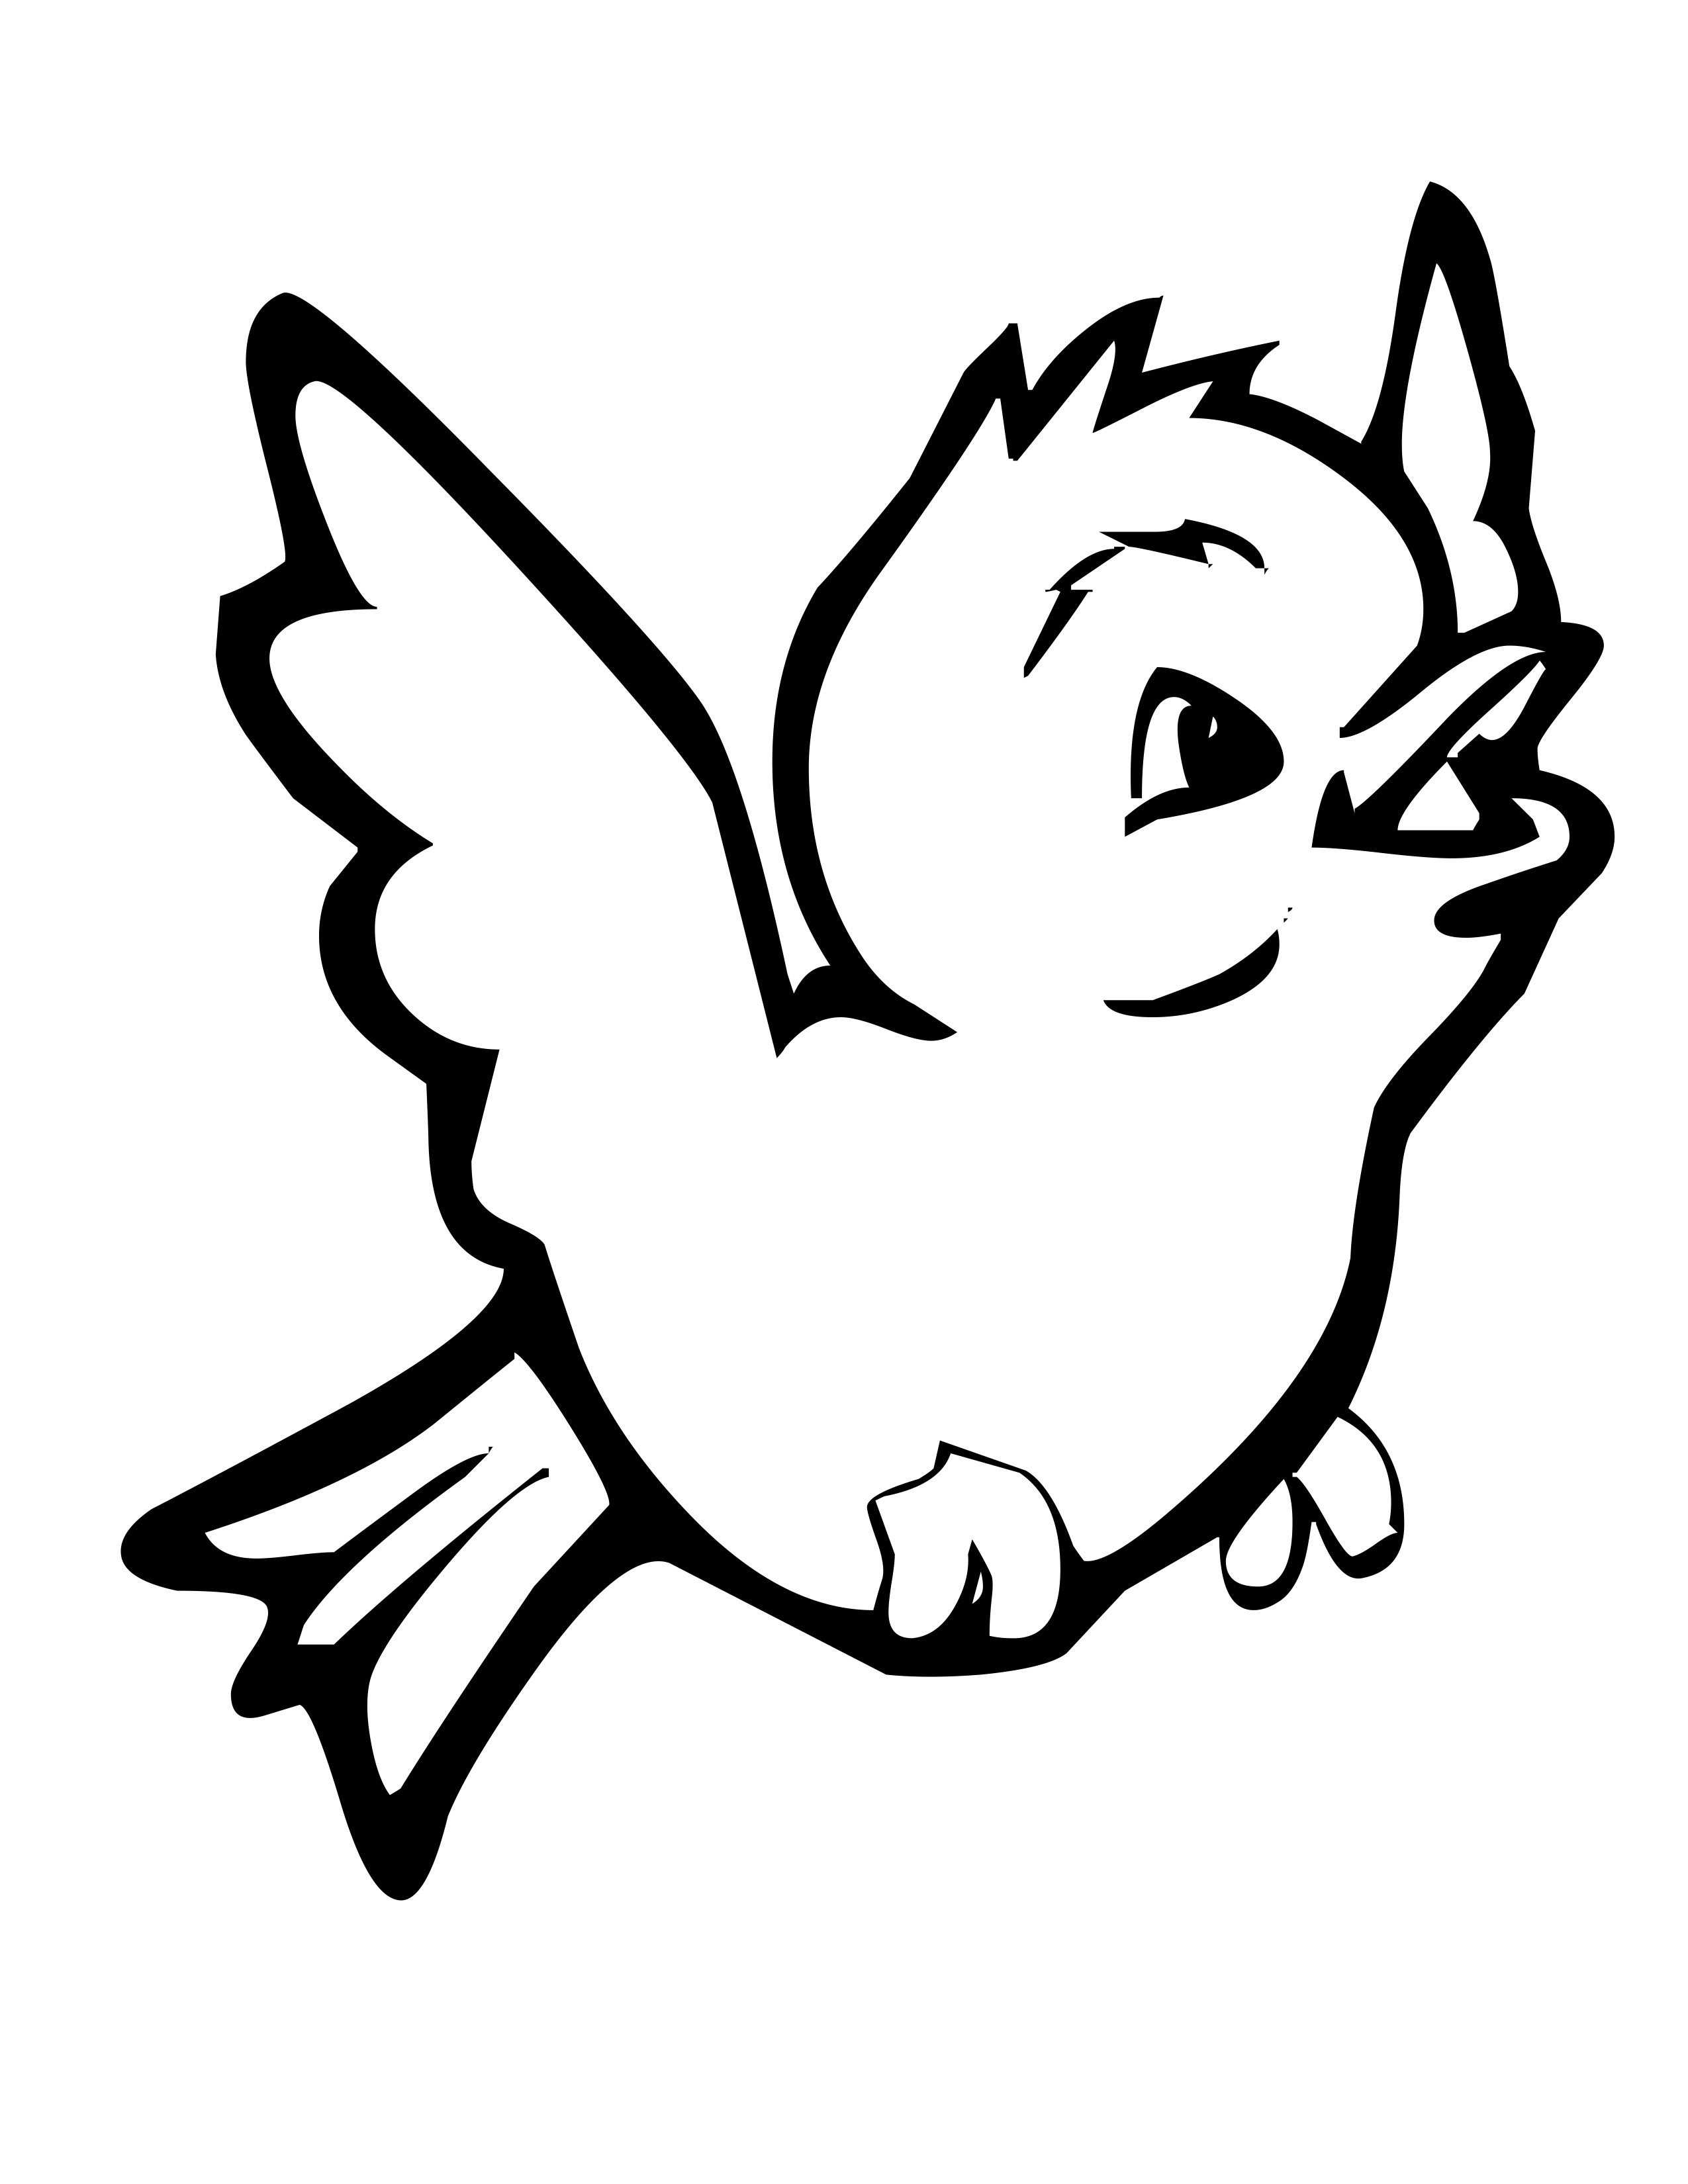 birds coloring pages cute bird coloring page for kids tsgoscom birds coloring pages